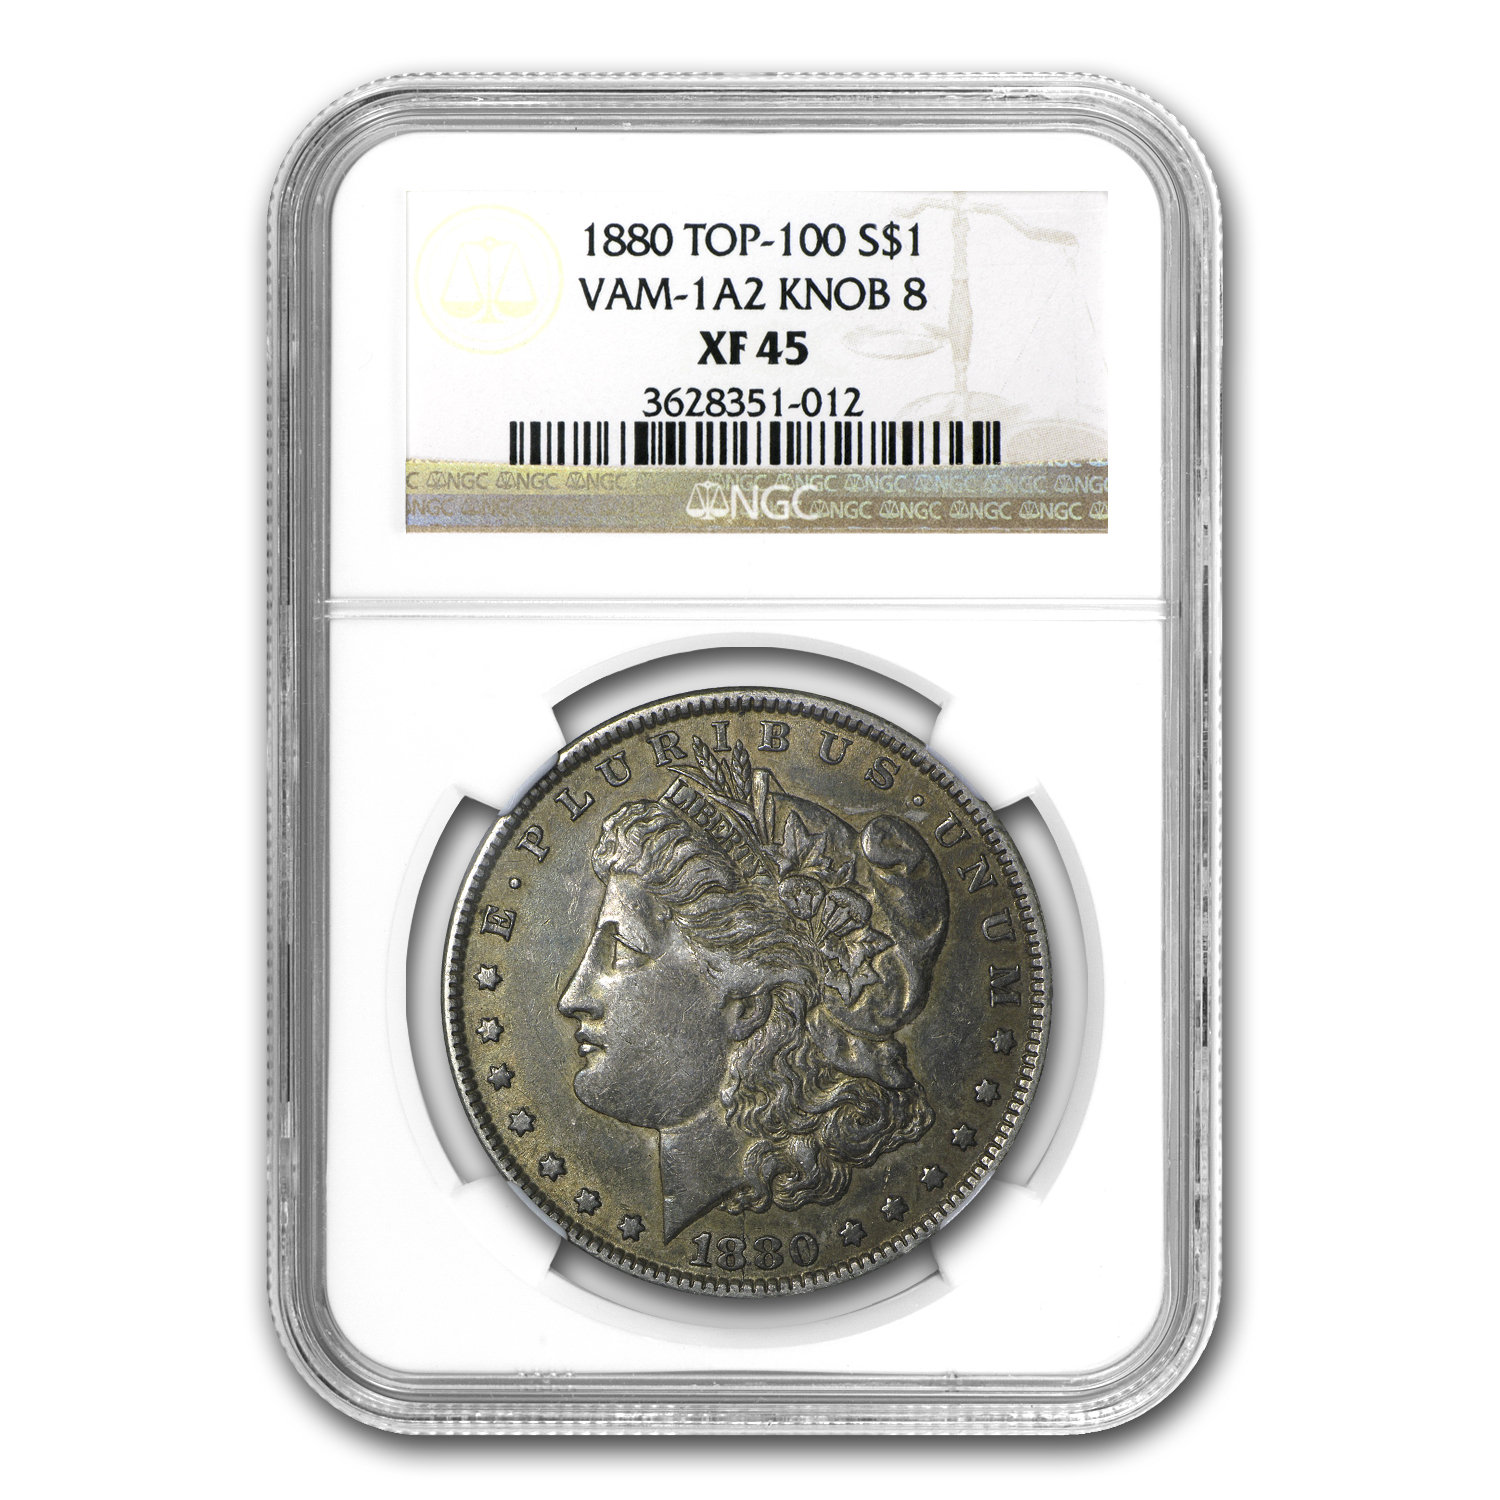 1880 Morgan Dollar XF-45 NGC VAM-1A2 Knobbed 8 Top-100